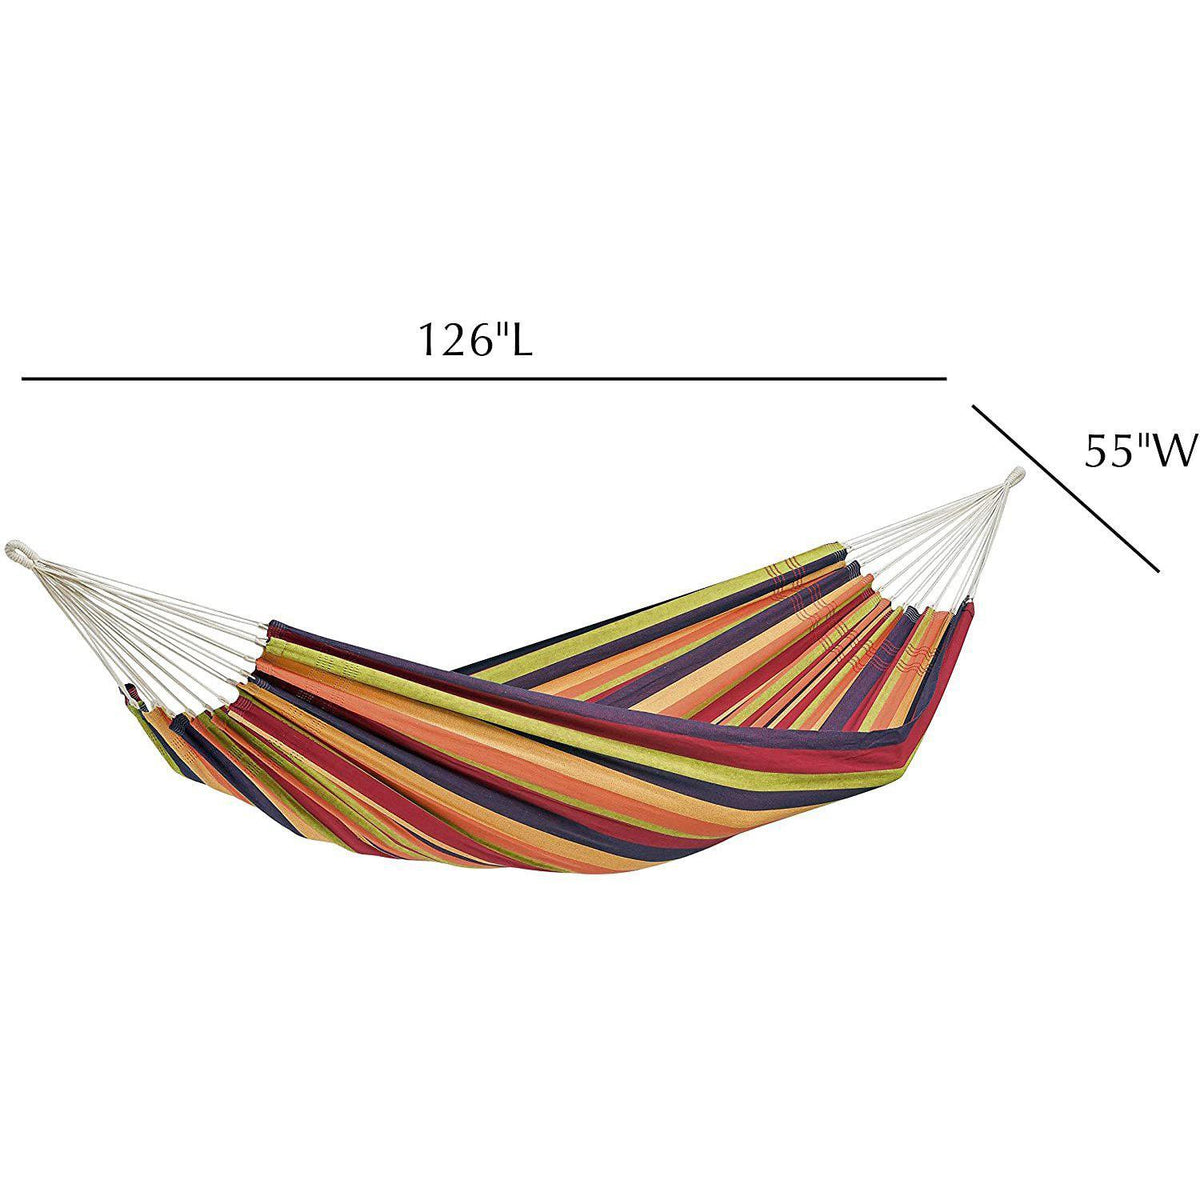 Lambada Hammock, from Byer of Maine